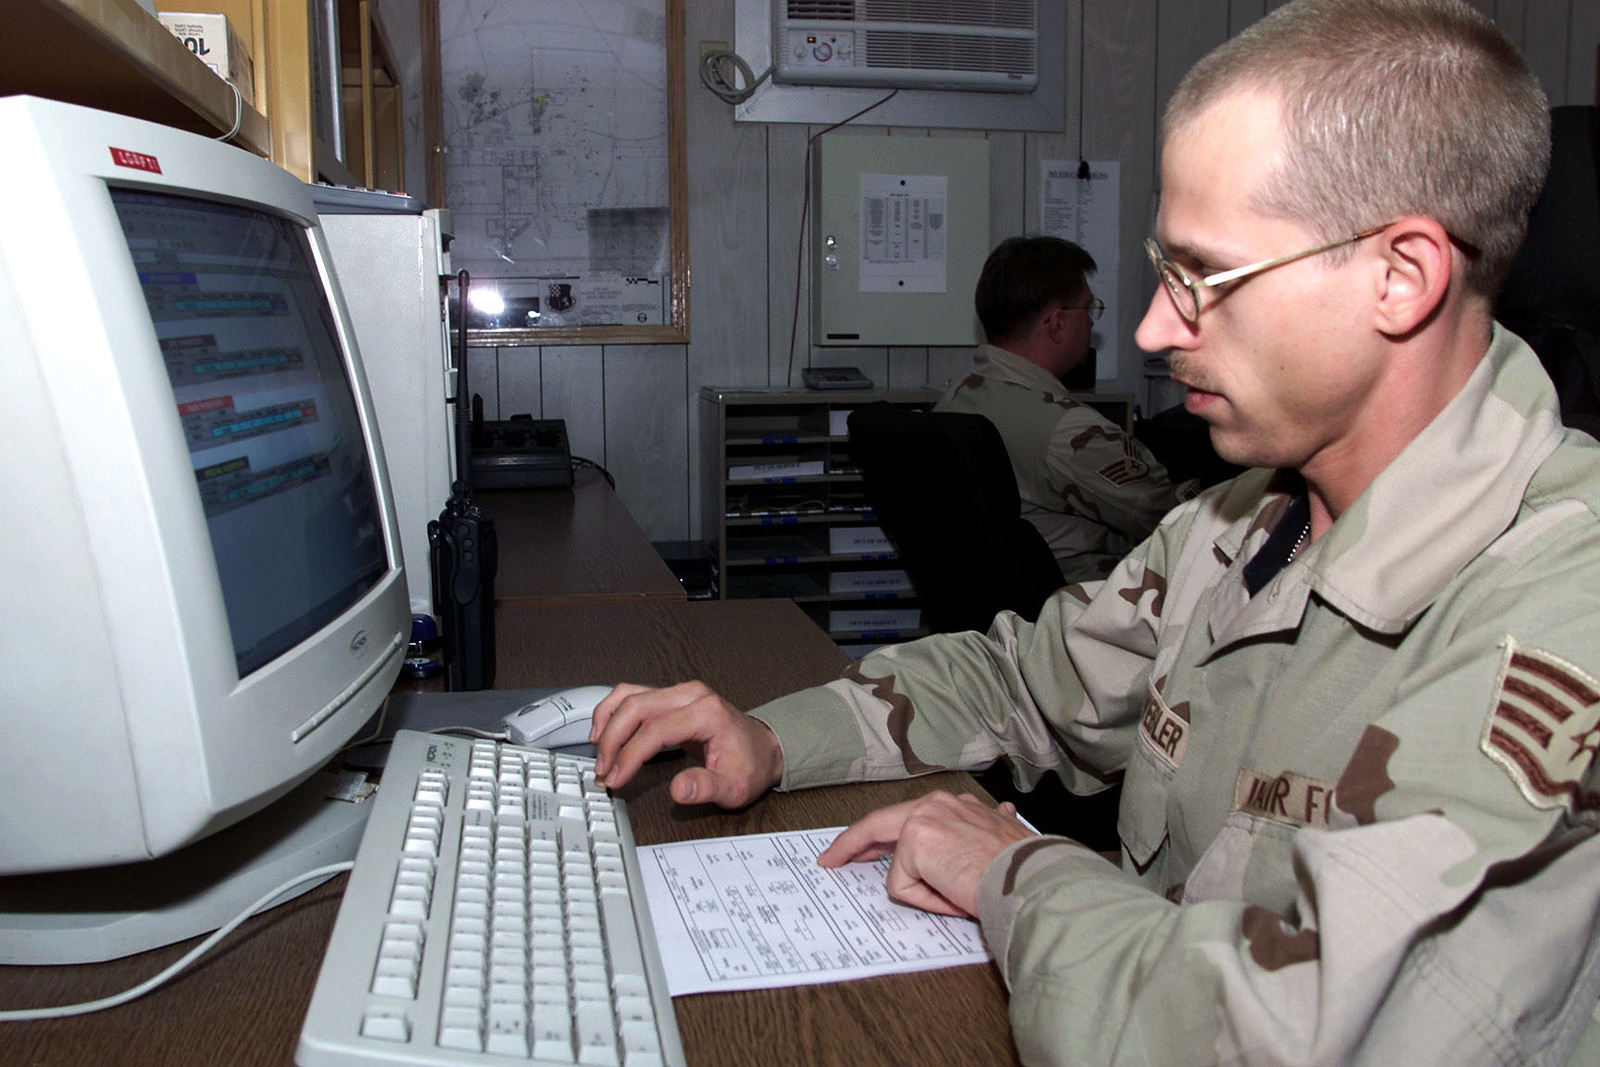 US Air Force STAFF Sergeant Keith A. Schwebler, 363rd Expeditionary Supply Squadron, Prince Sultan Air Base, Saudi Arabia, updates reports in the squadrons control center. SSGT Schwebler is part of the coalition force here to support Operation SOUTHERN WATCH, a military effort to enforce the no-fly and no-drive zone in Southern Iraq